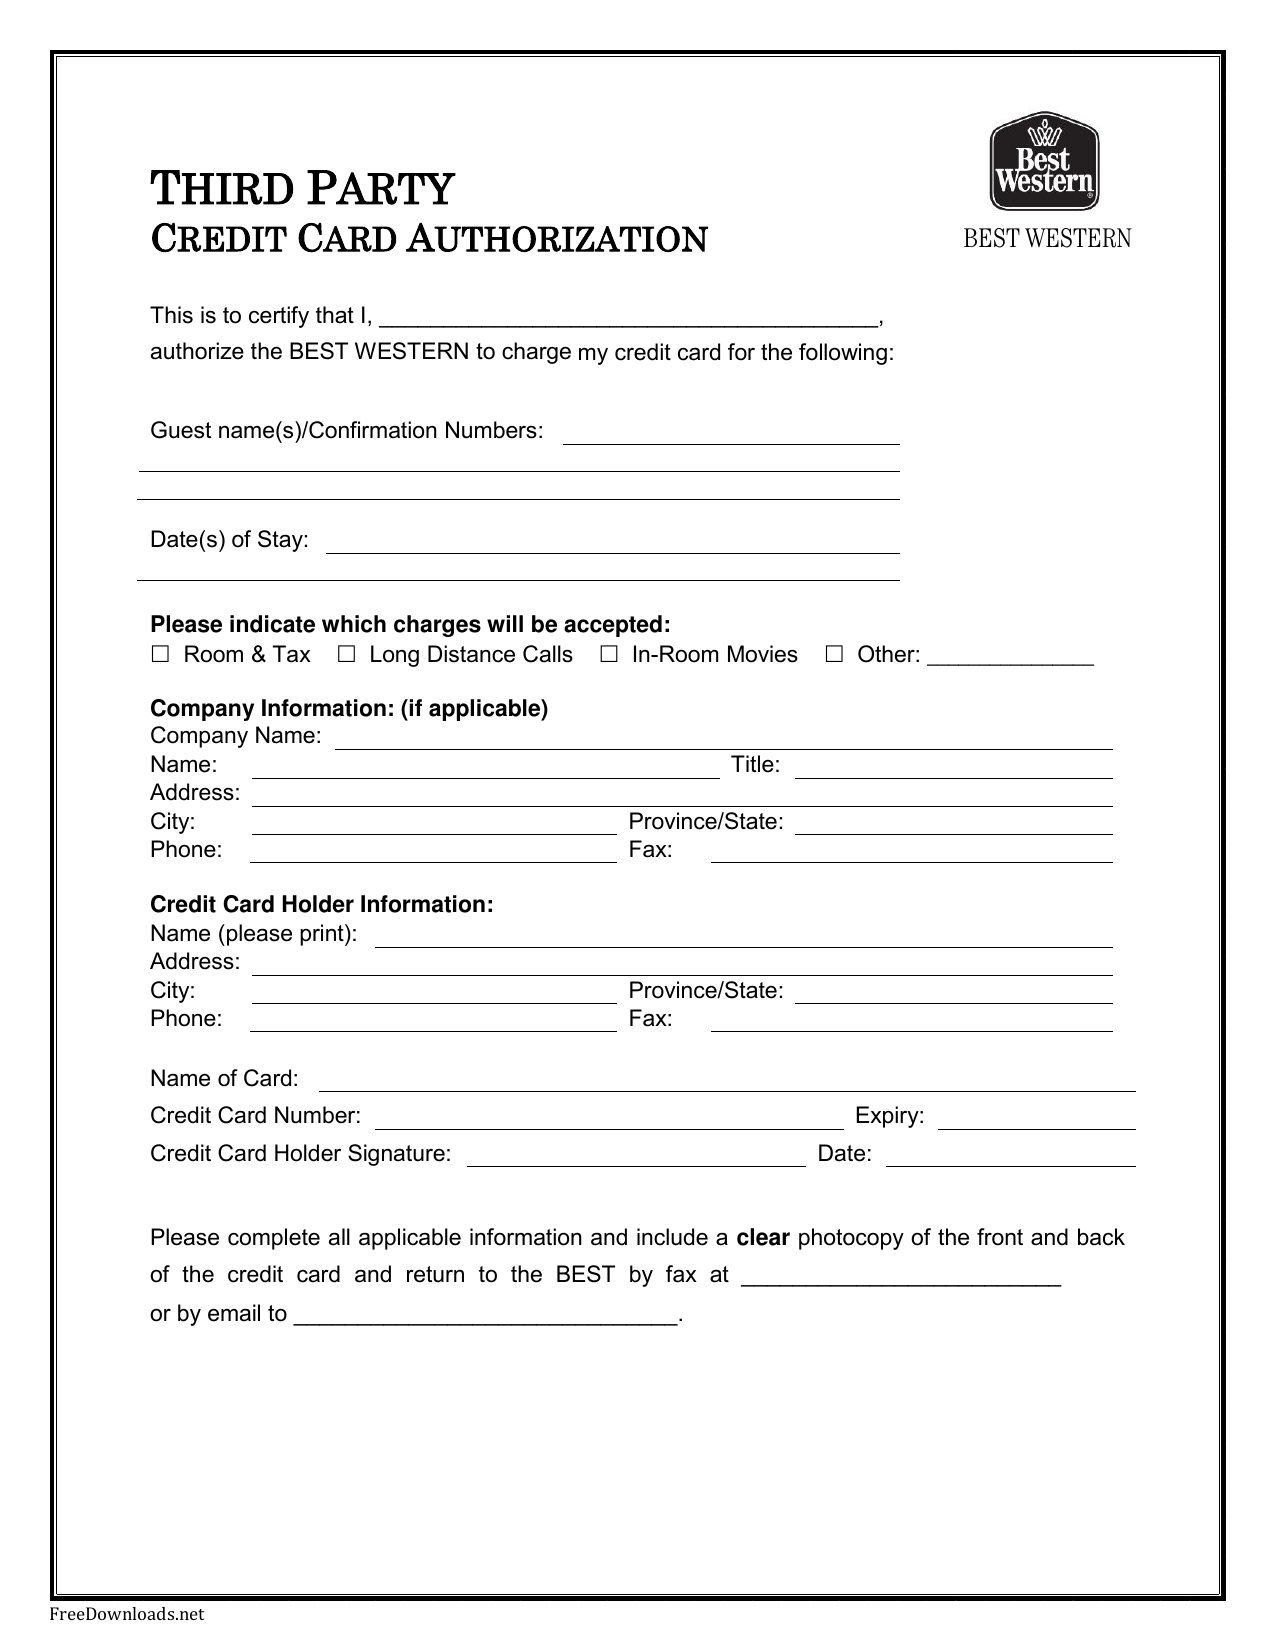 Credit Card Authorization Form Template Pdf - Colona.rsd7 Throughout Credit Card Payment Form Template Pdf